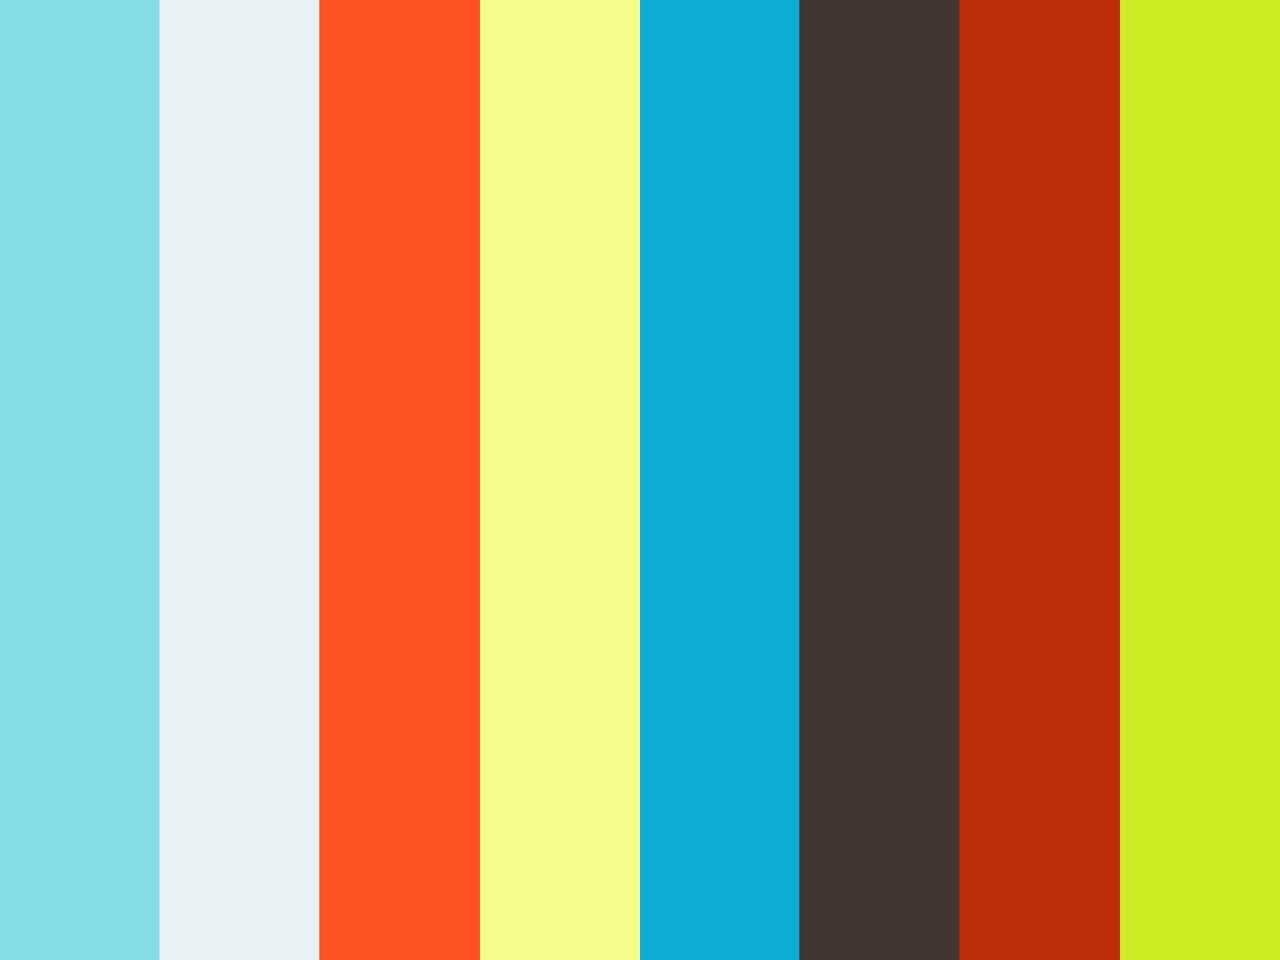 113 Branding Red Carpet TV Web Series Featuring Katy Blevins